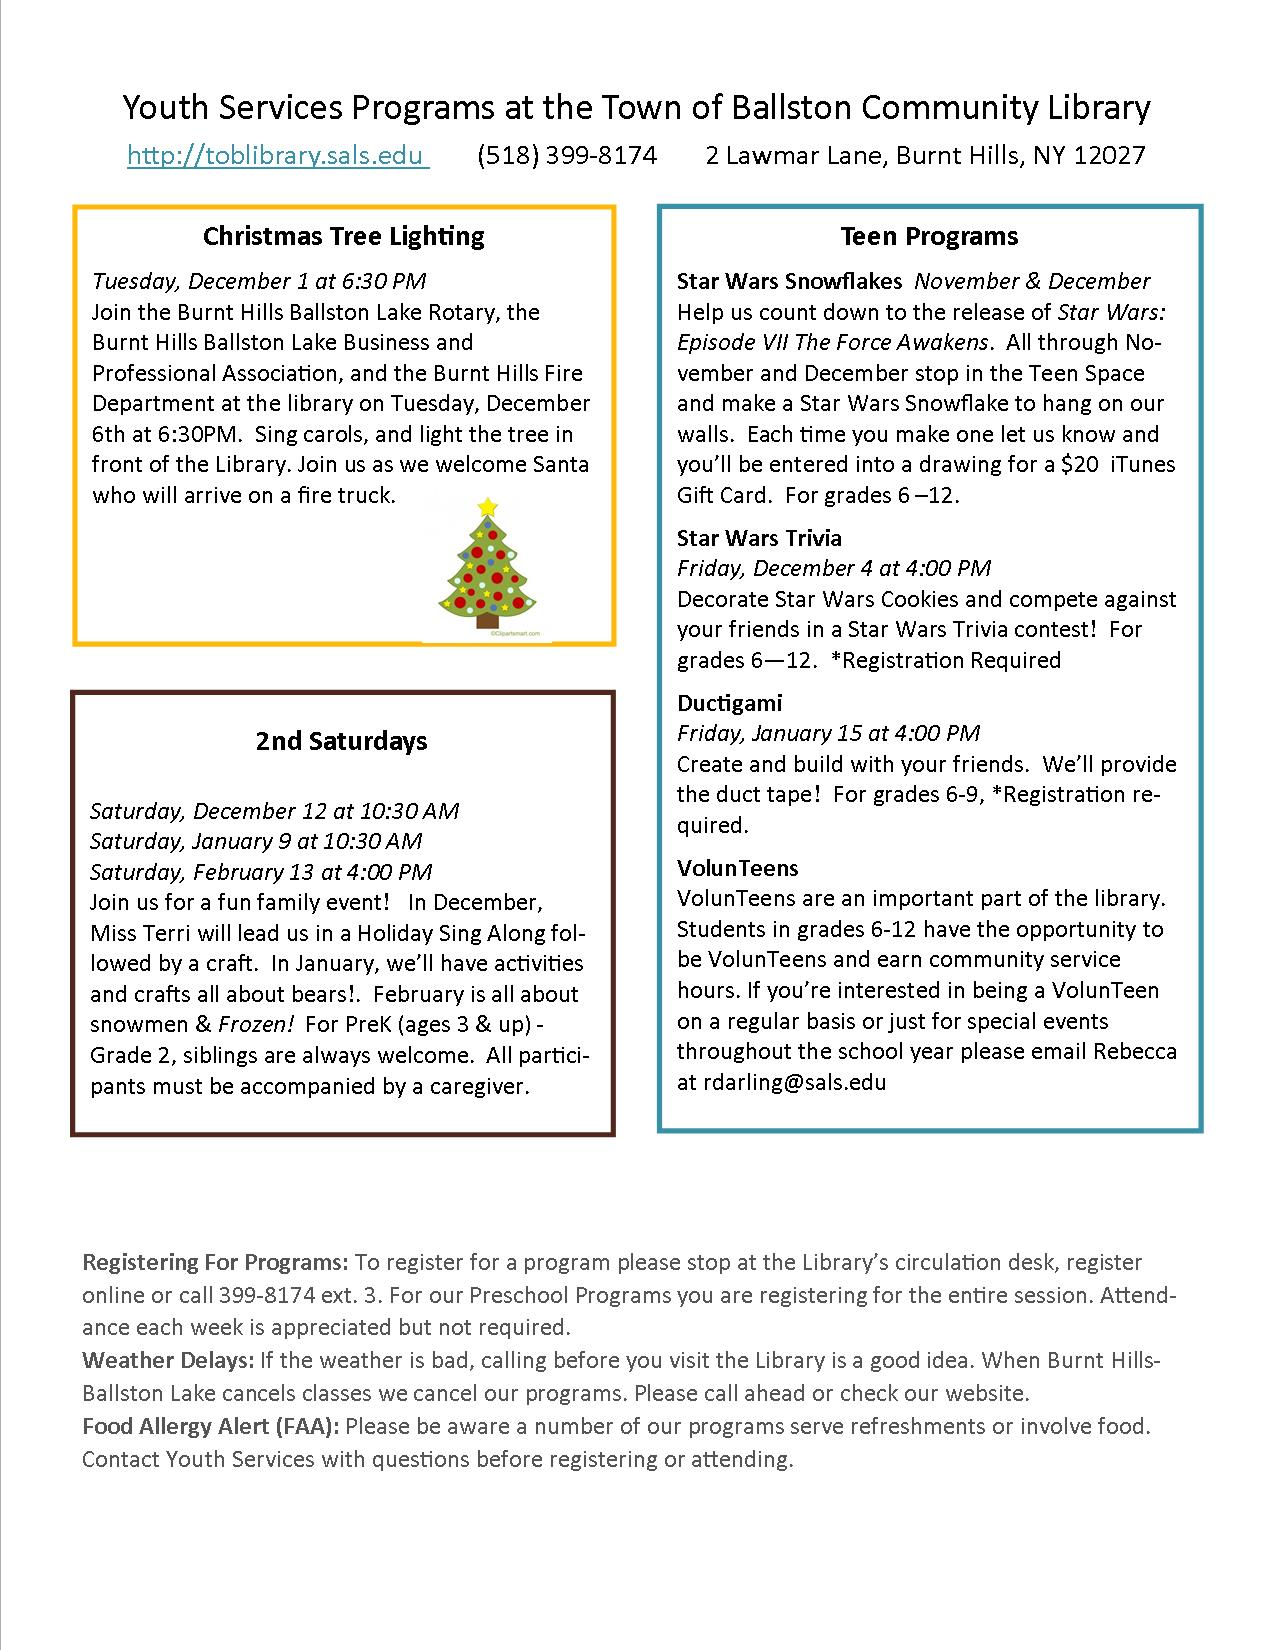 Dec descriptions pg 2